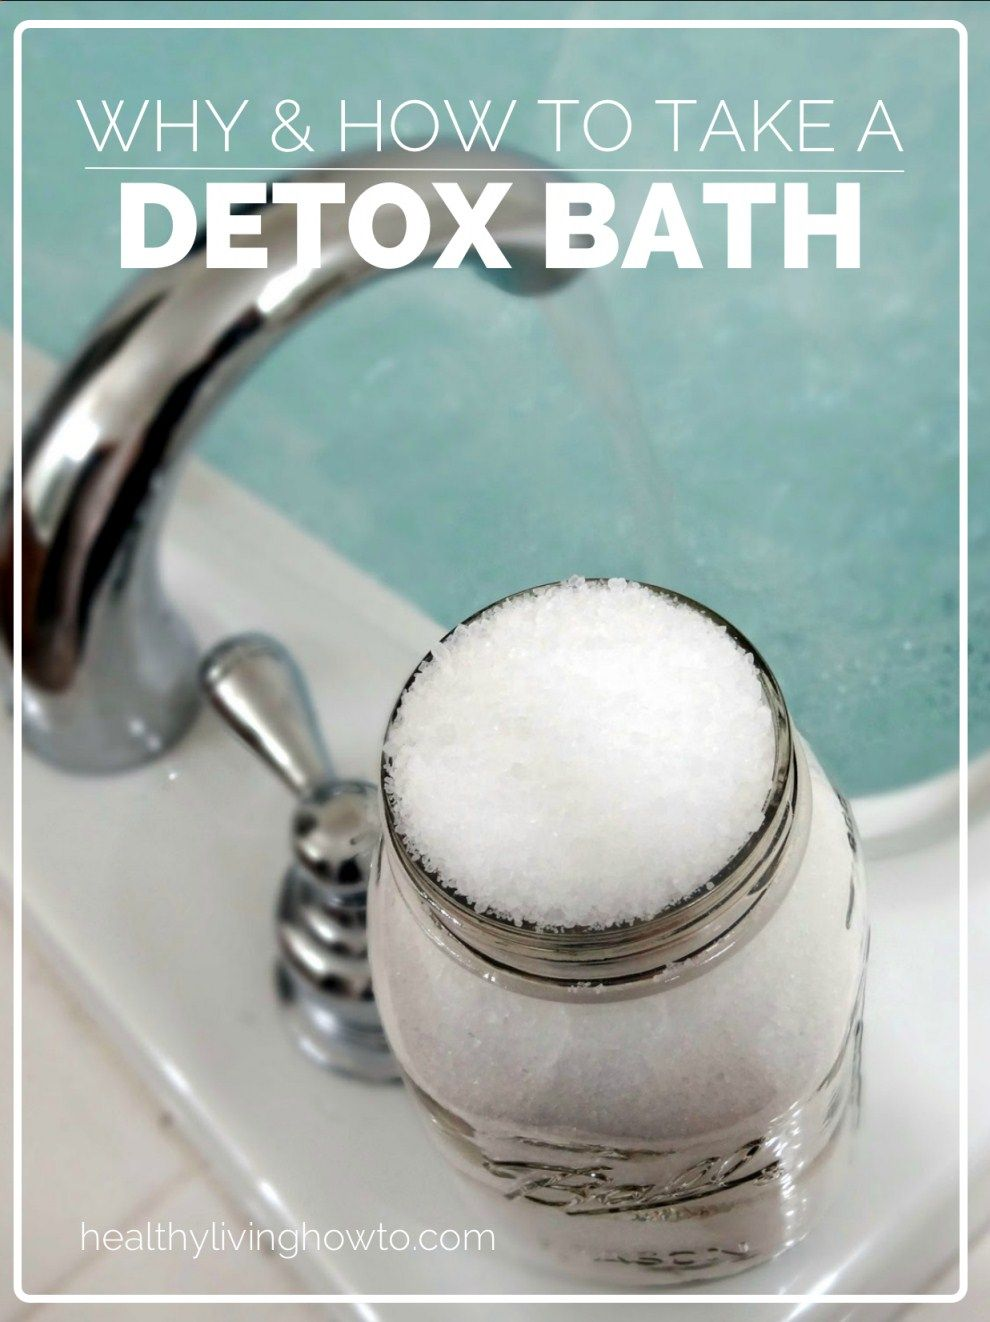 Detox baths from Healthy Living How To